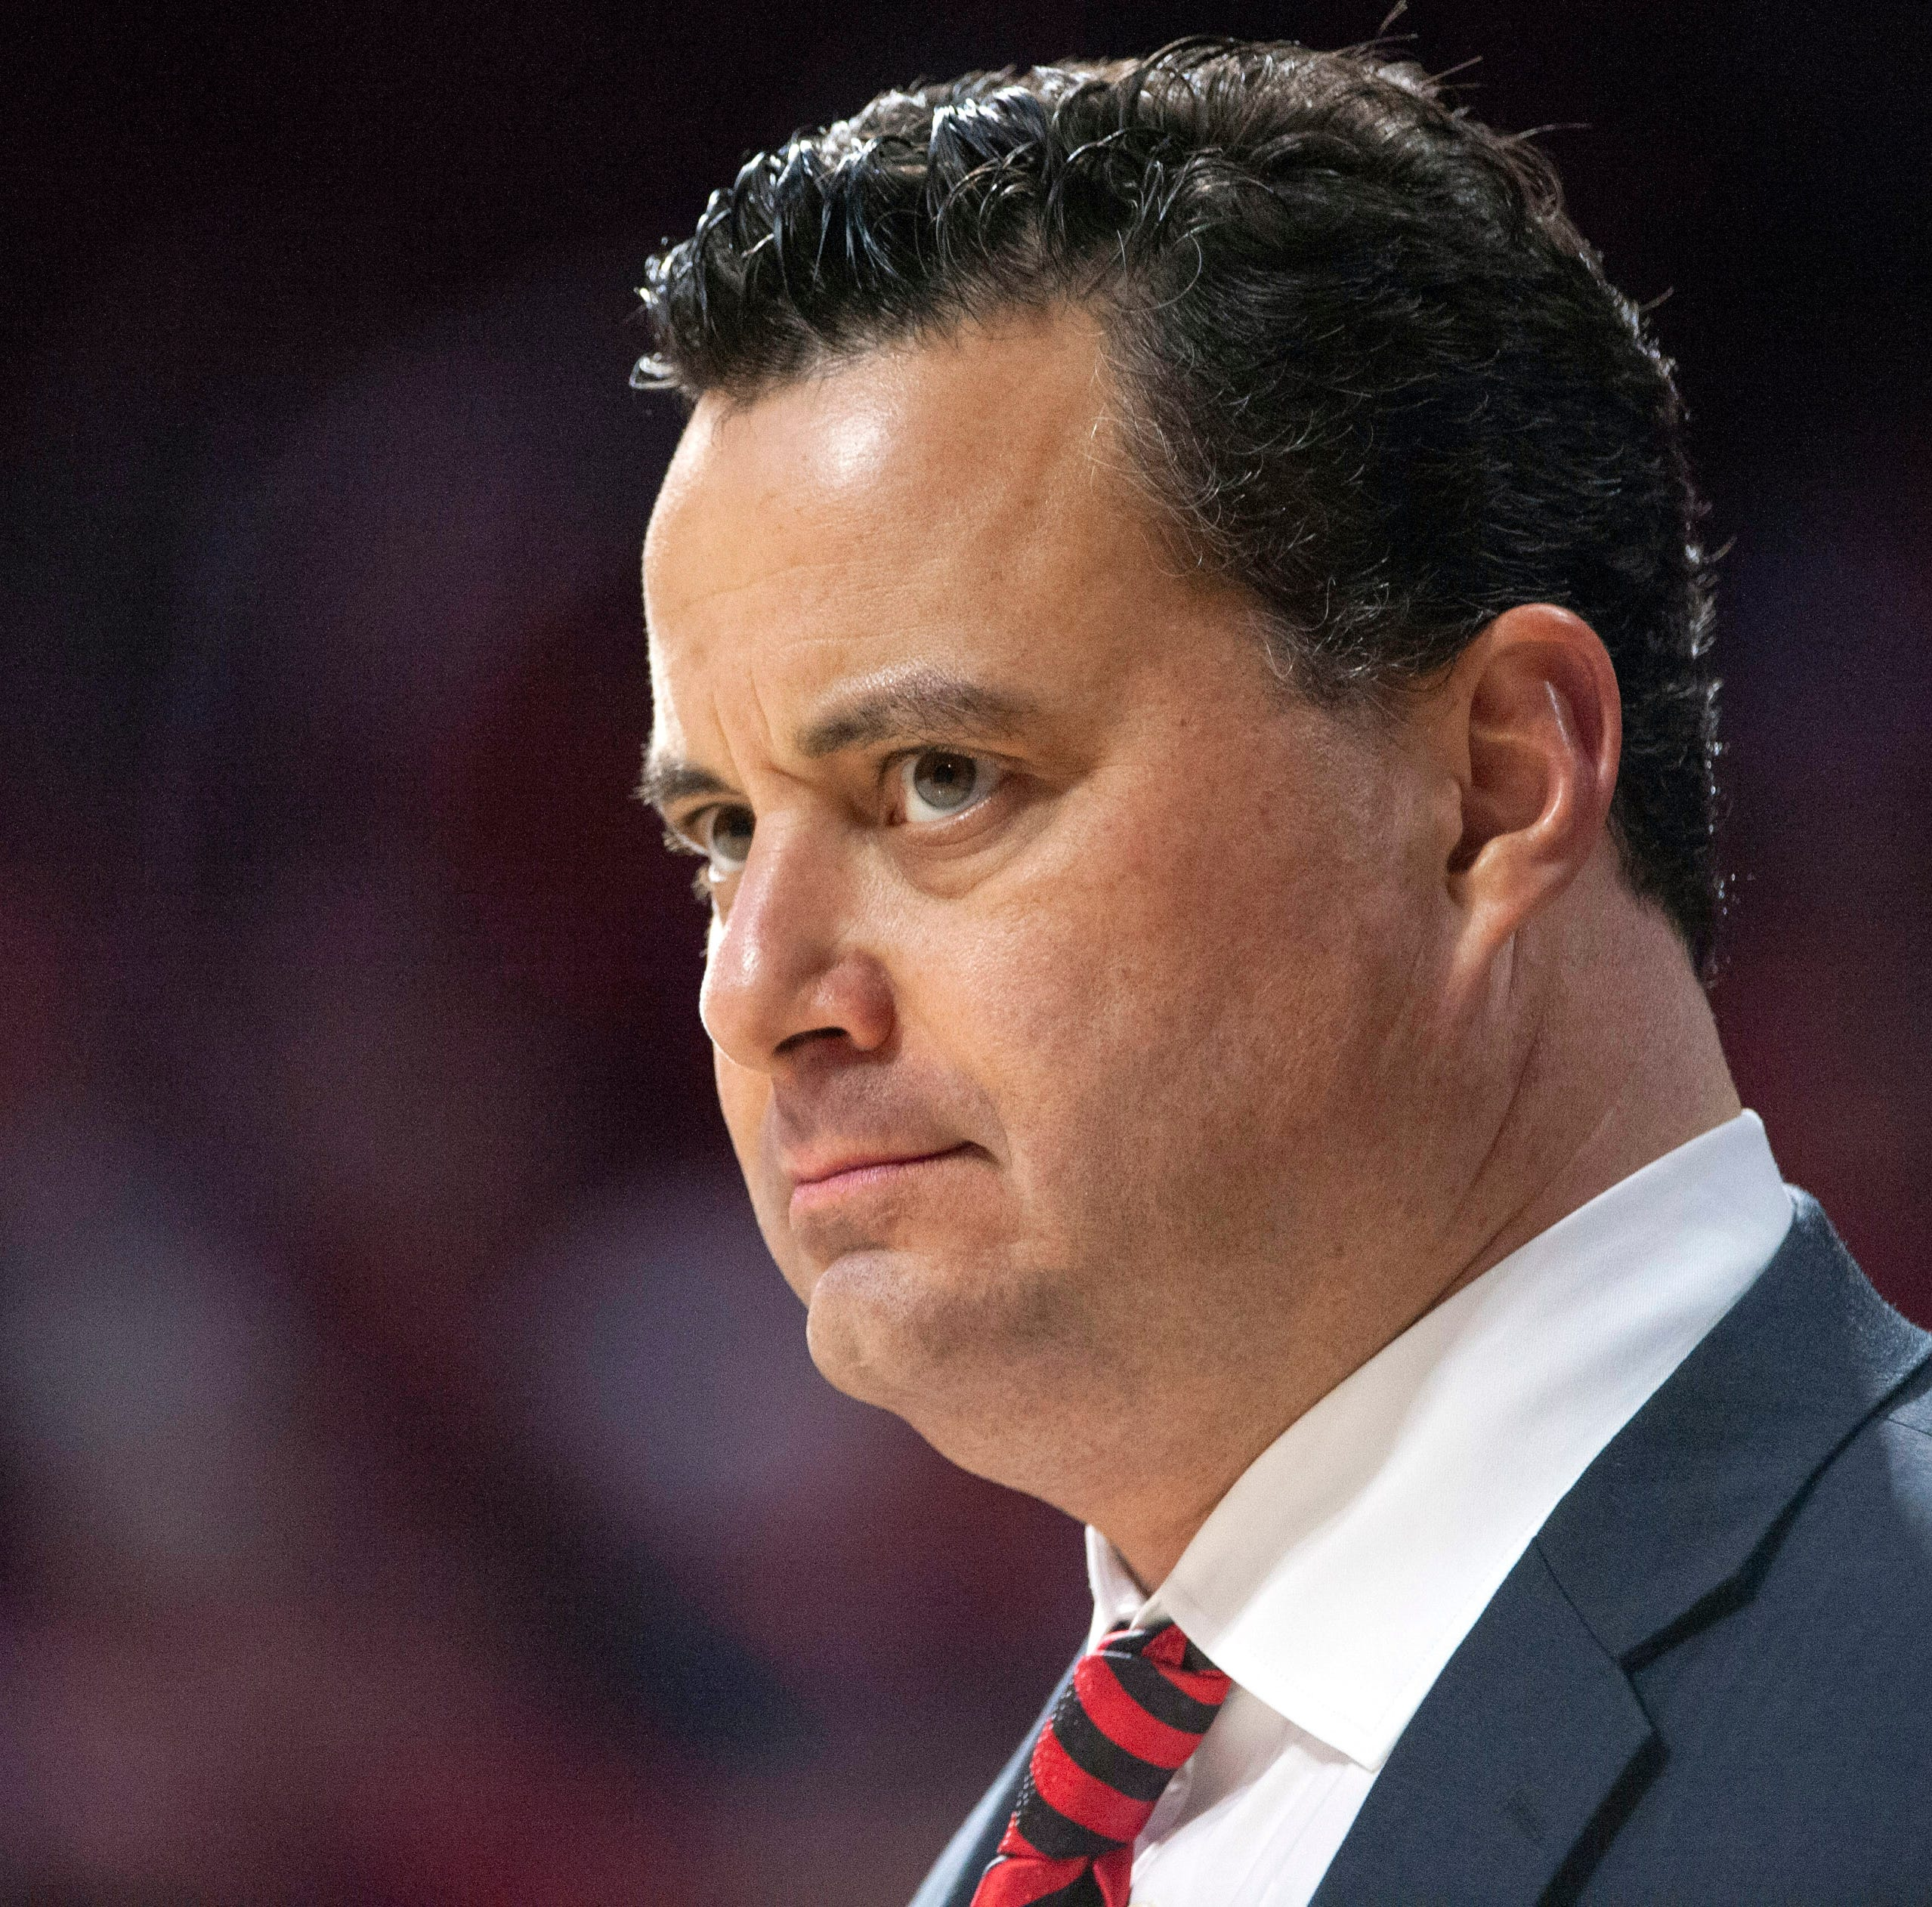 Sean Miller's our coach: Arizona president backs coach after basketball bribery trial